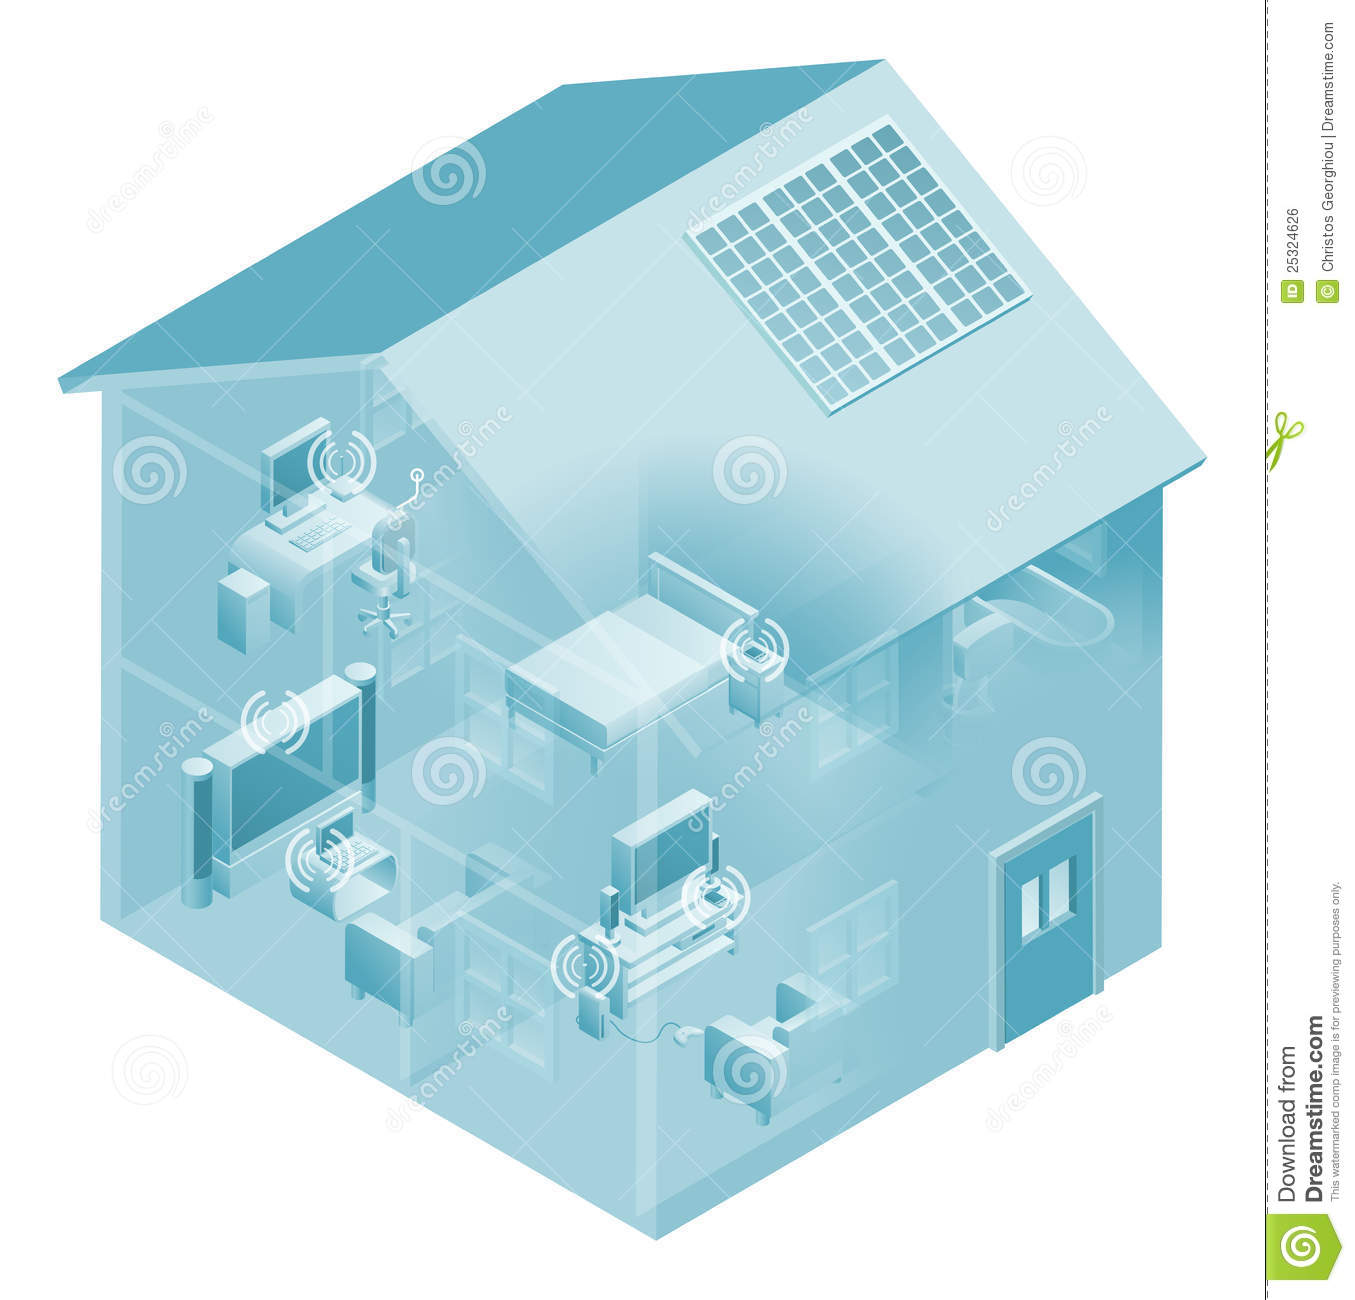 Home Local Area Network House Stock Vector - Illustration of ...